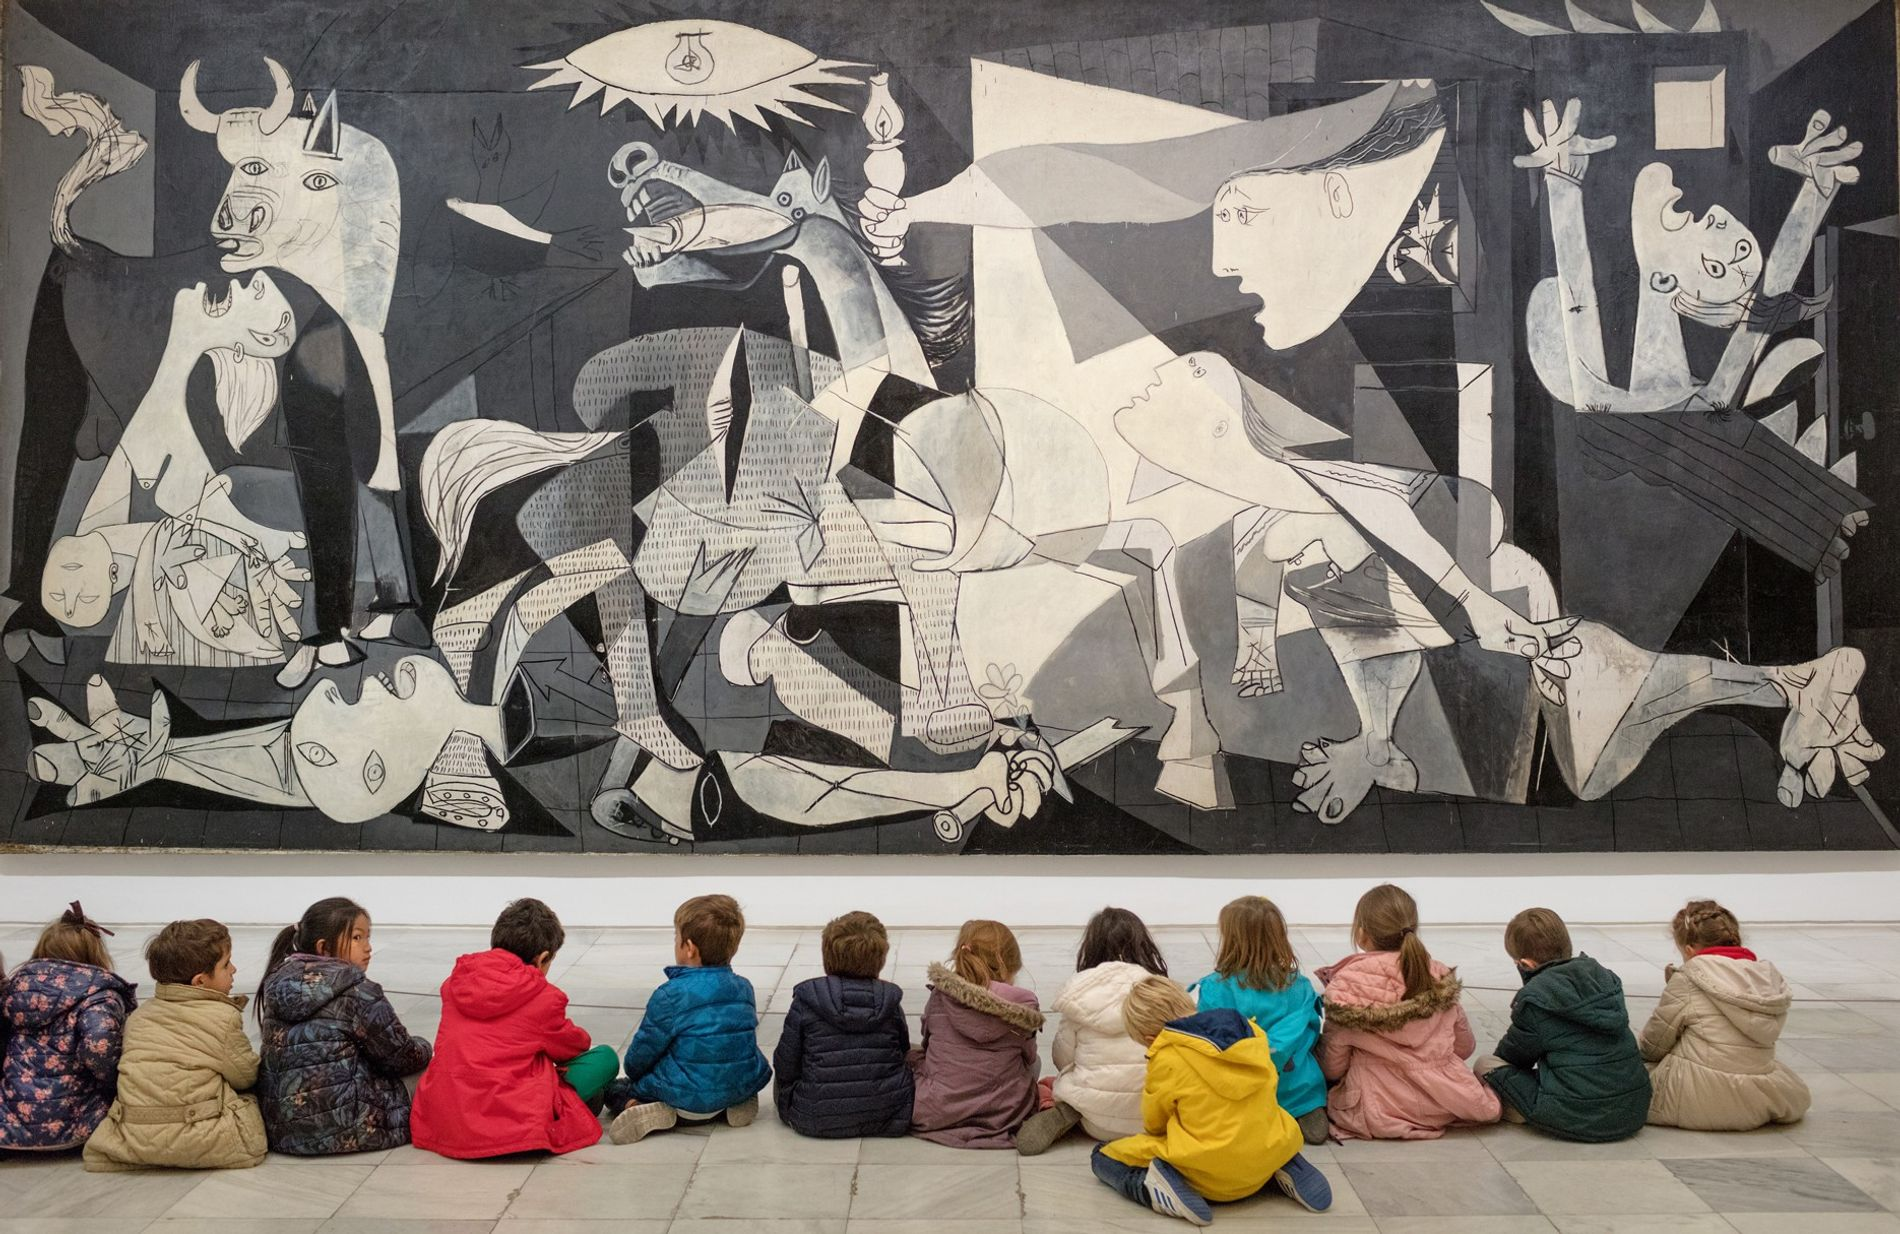 "At Reina Sofía museum in Madrid, schoolchildren visit Picasso's iconic painting ""Guernica,"" which depicts death and anguish in the aftermath of the bombing of the Basque town in 1937. Although precipitated by the Spanish Civil War, the image represents universal suffering, no matter the time or place."